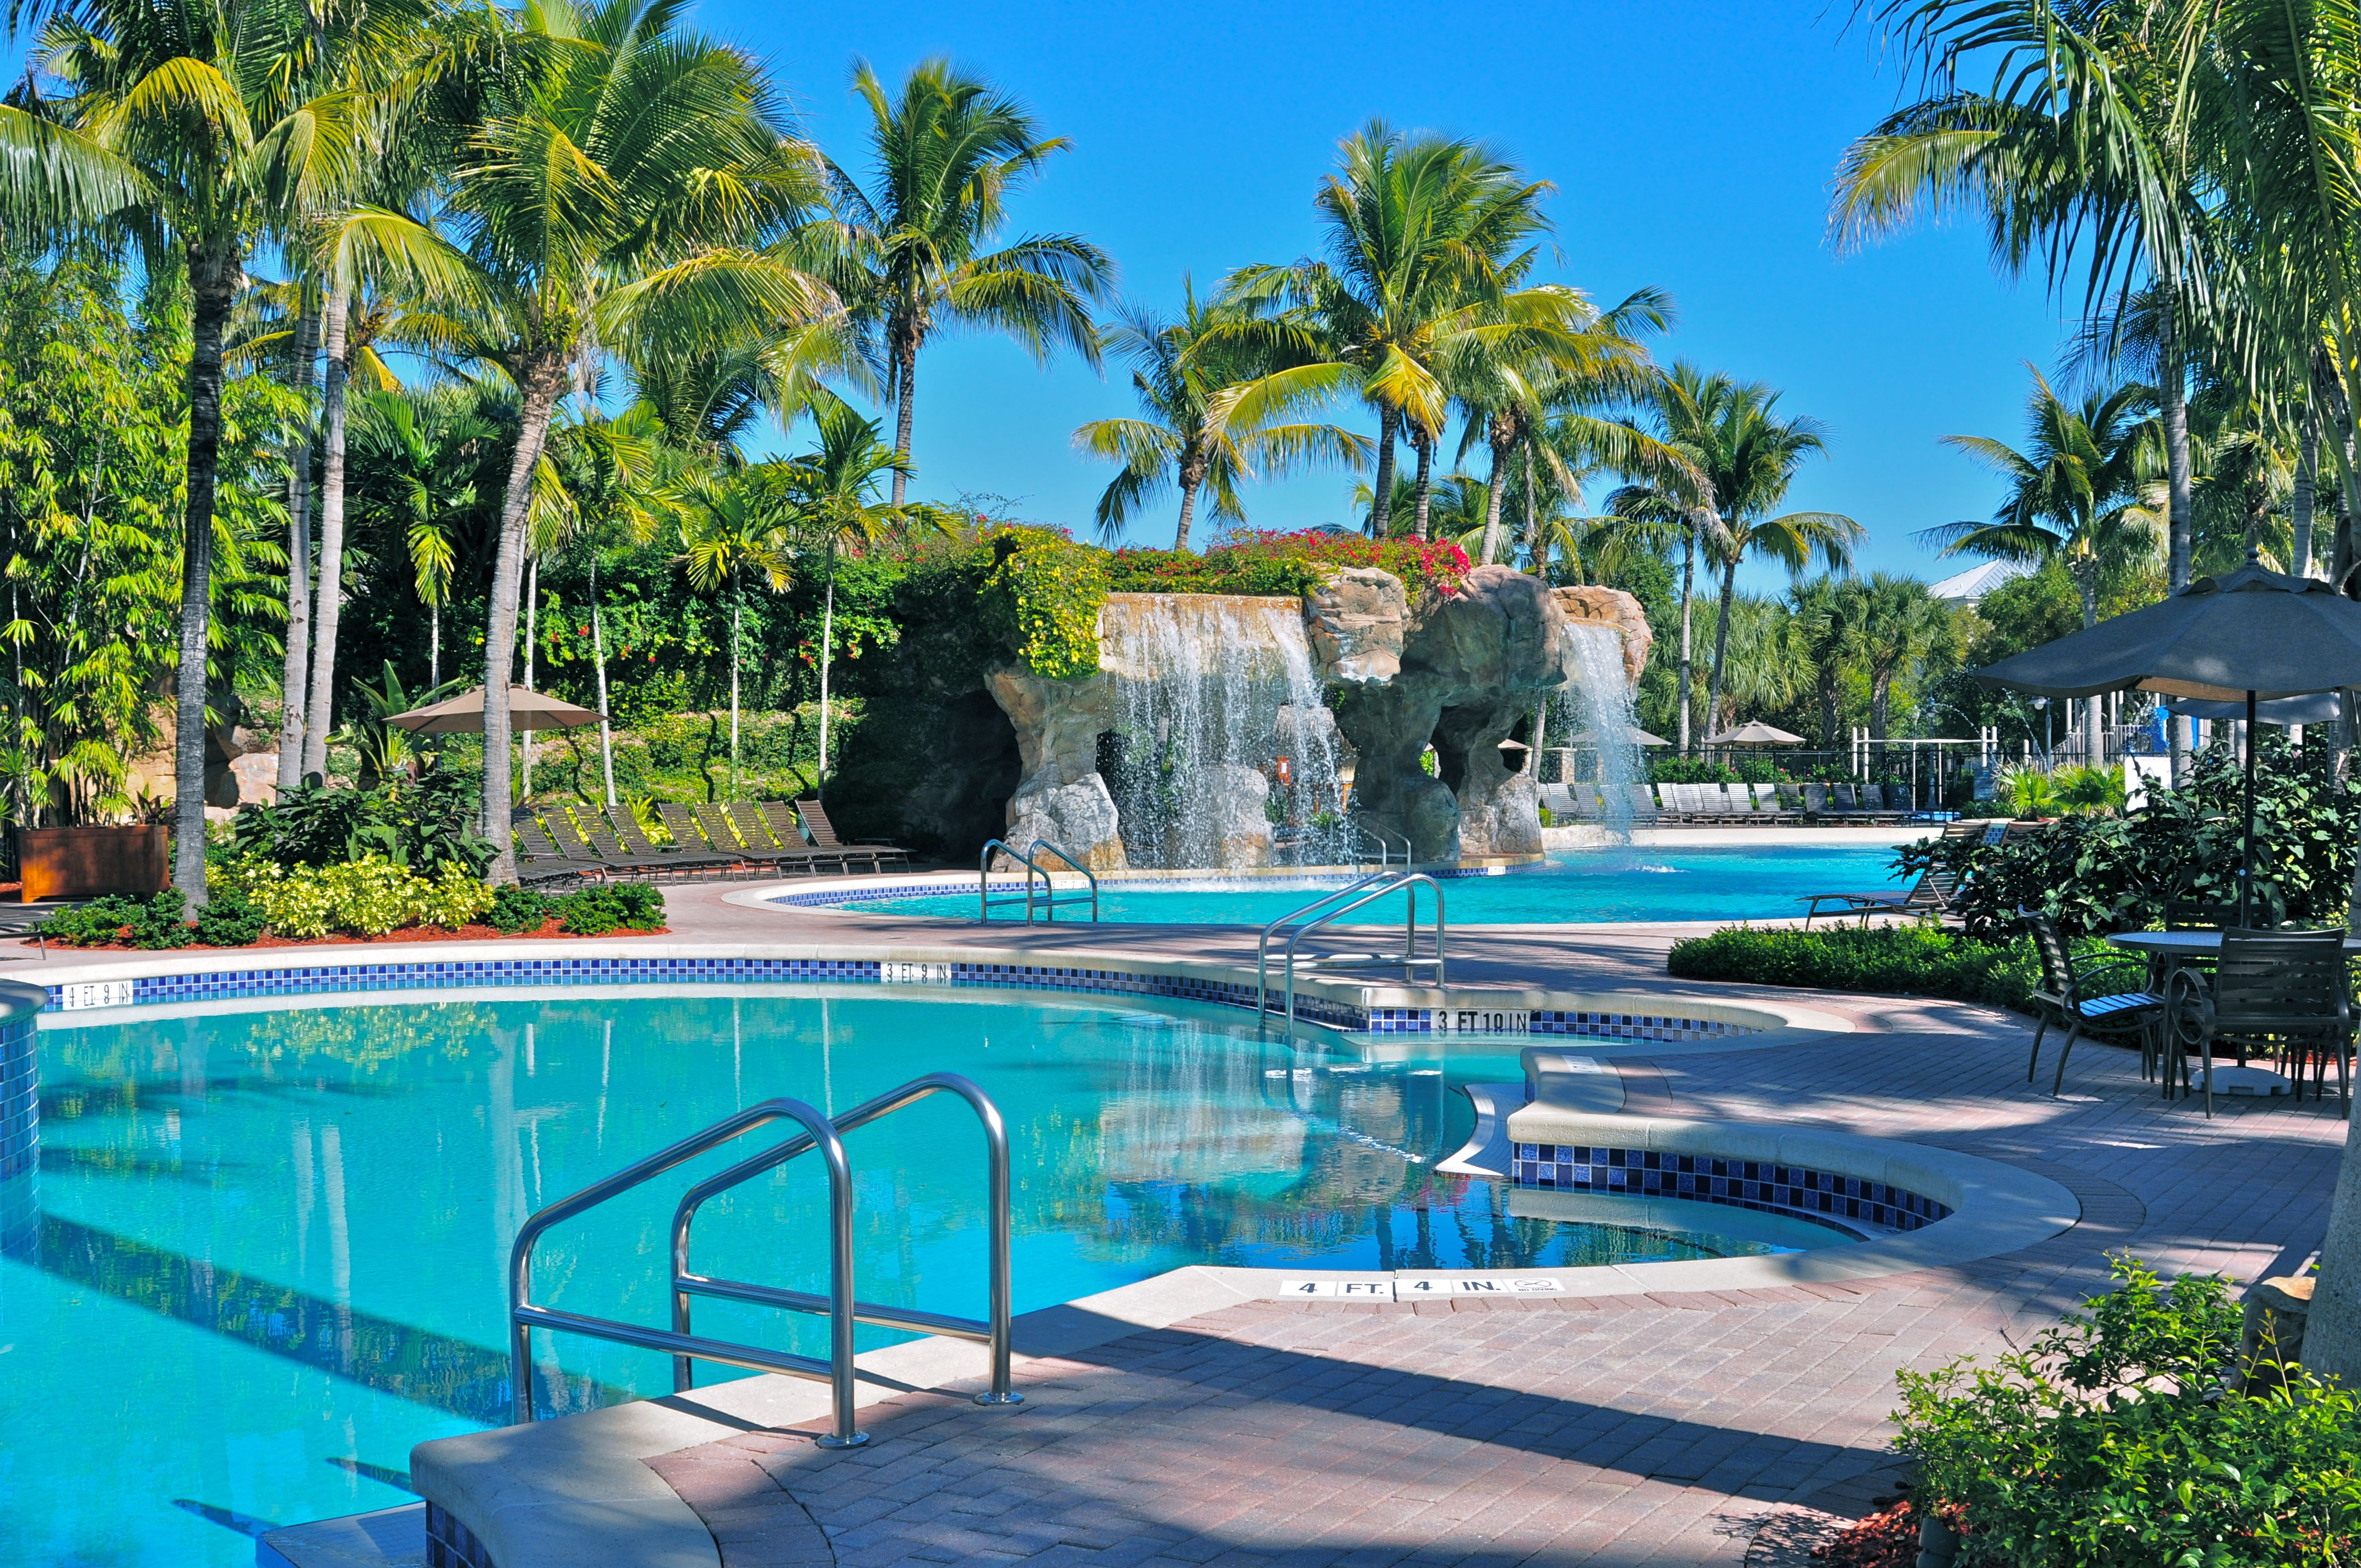 BEAUTIFUL Hyatt Coconut Plantation Resort, Bonita Springs